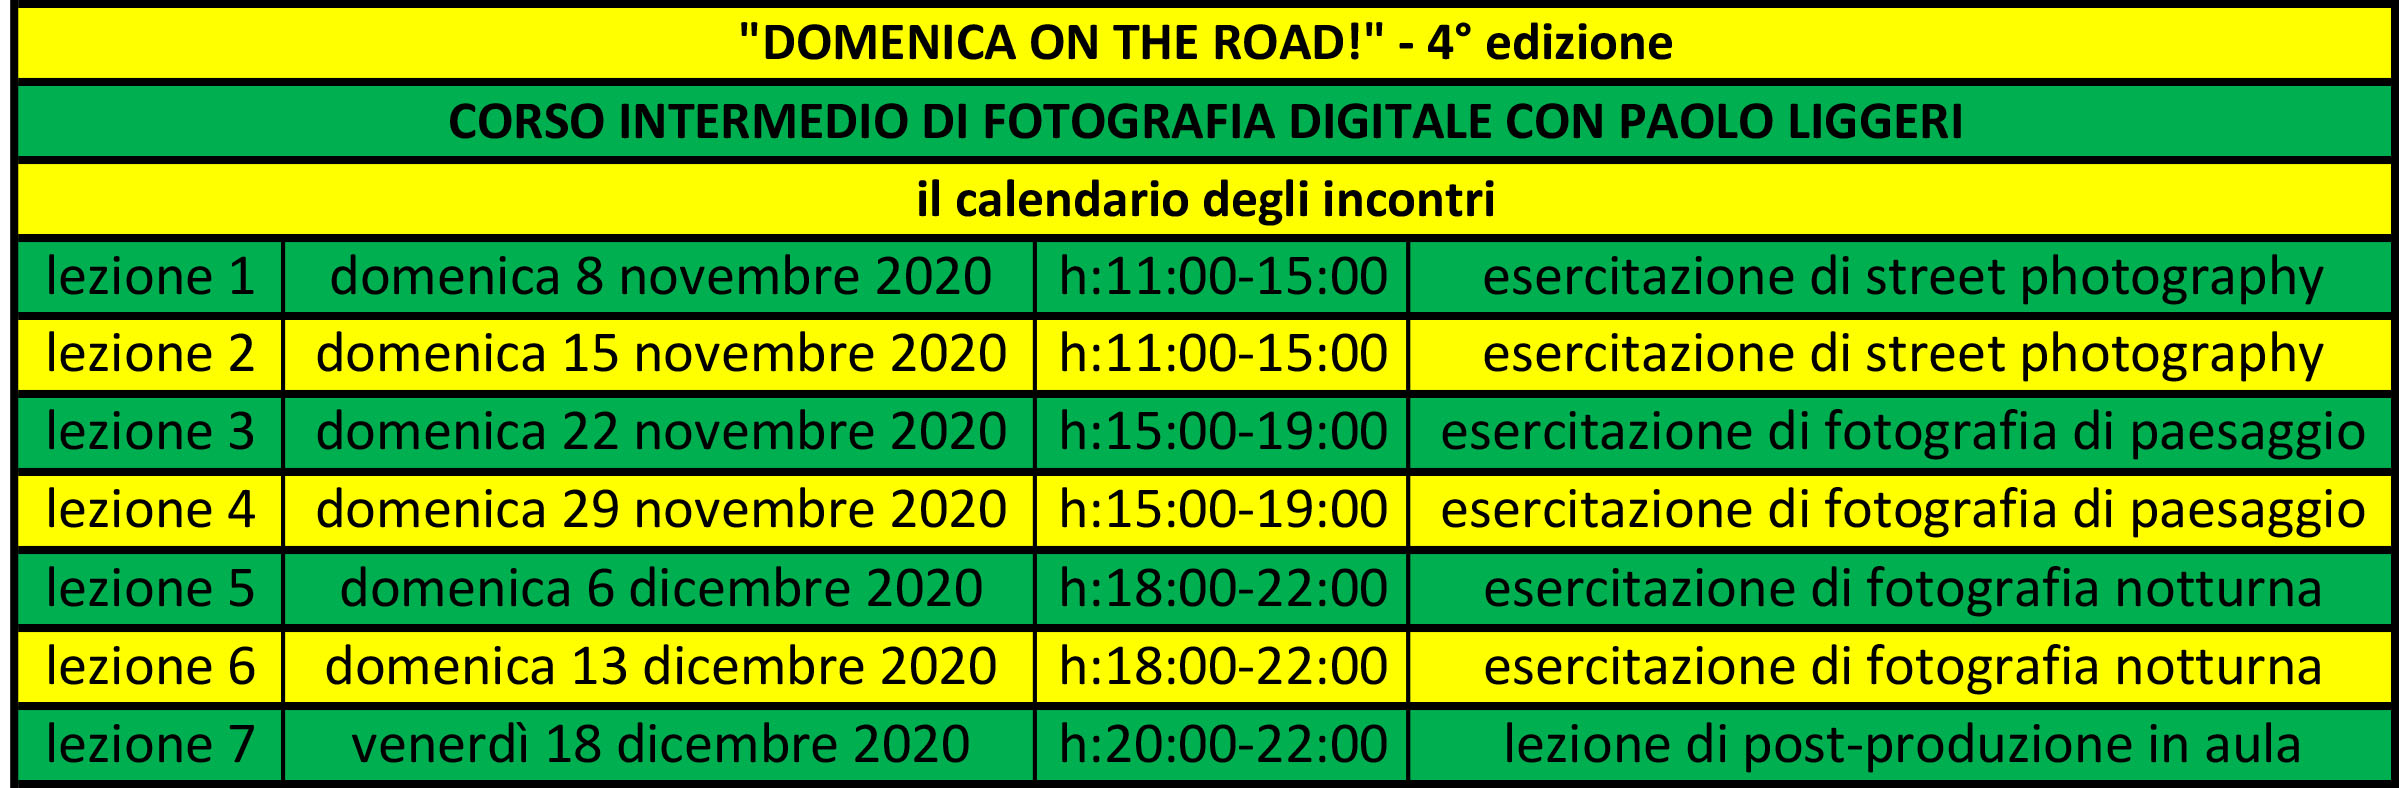 "il calendario del corso intermedio di fotografia ""Domenica on the road!"""